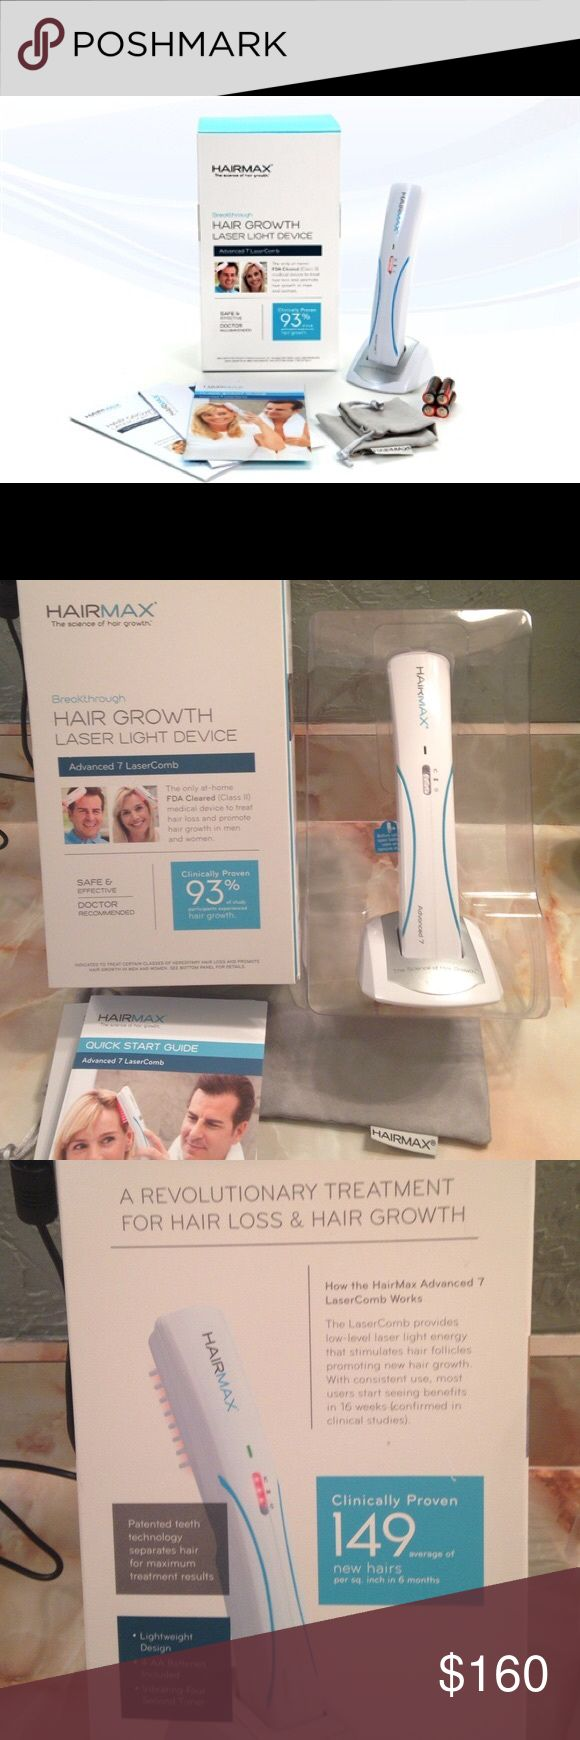 New Hairmax Lazer Hairmax laser comb advanced comb. Excellent condition hairmax Accessories Hair Accessories